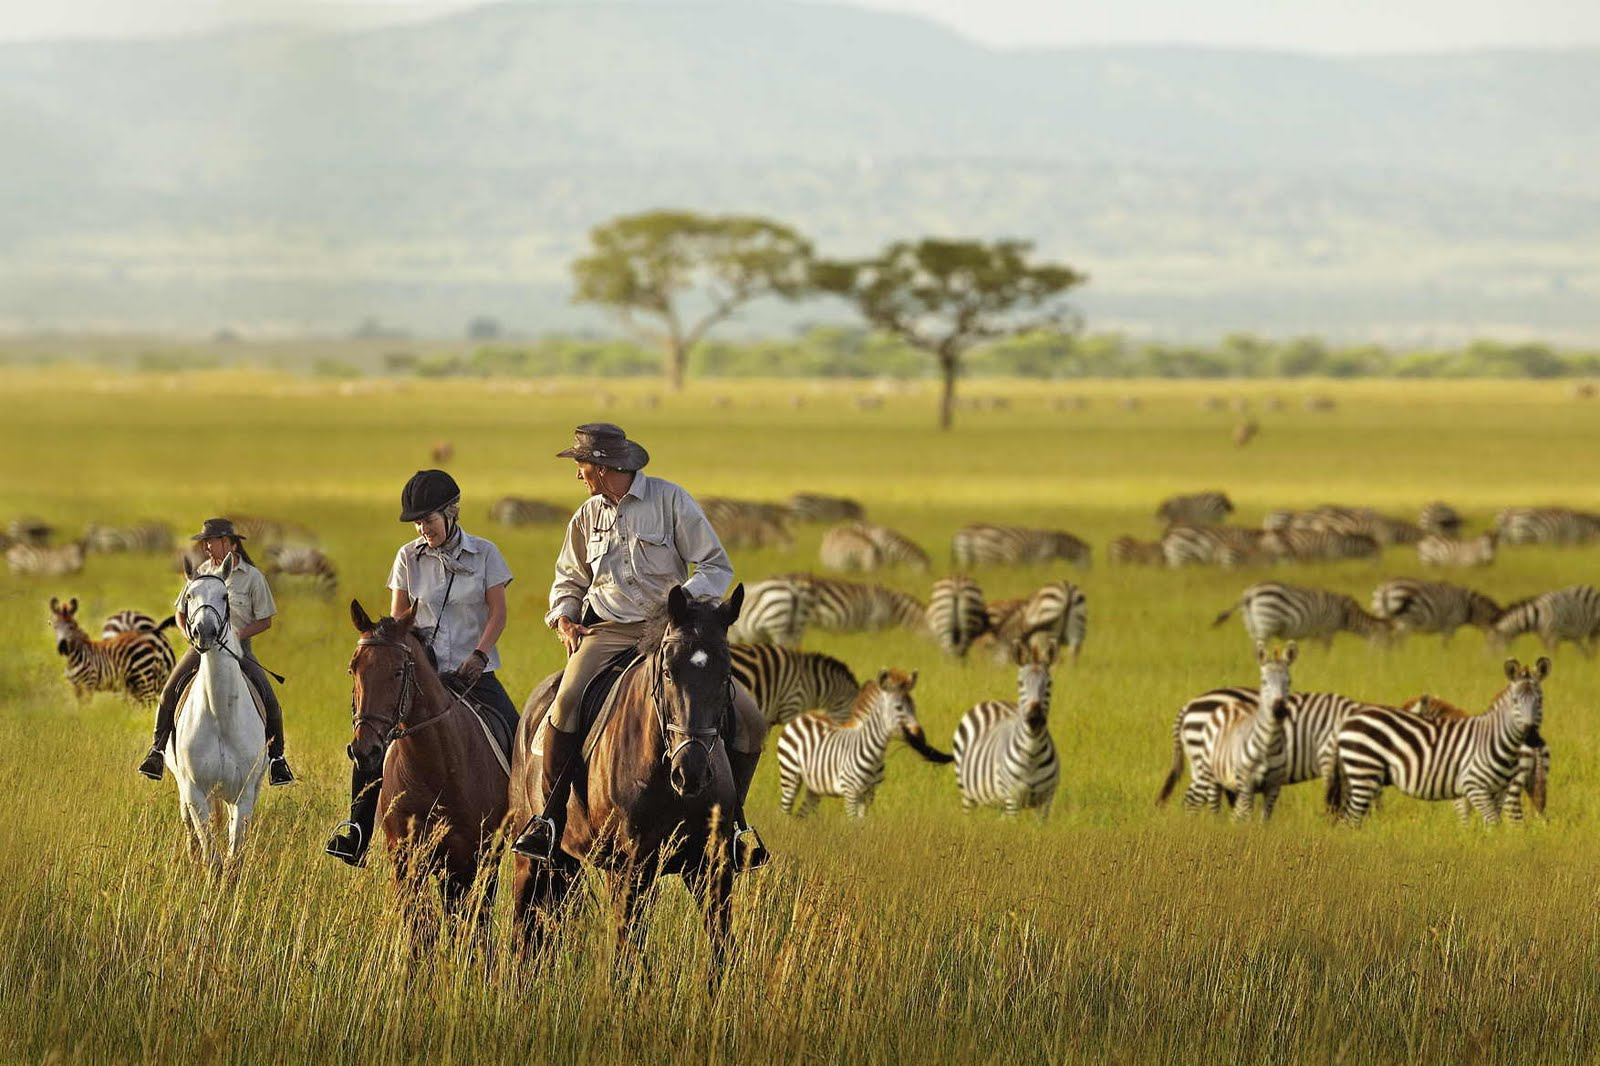 Give Incandescent Sun Migrating Animals In The Serengeti Park